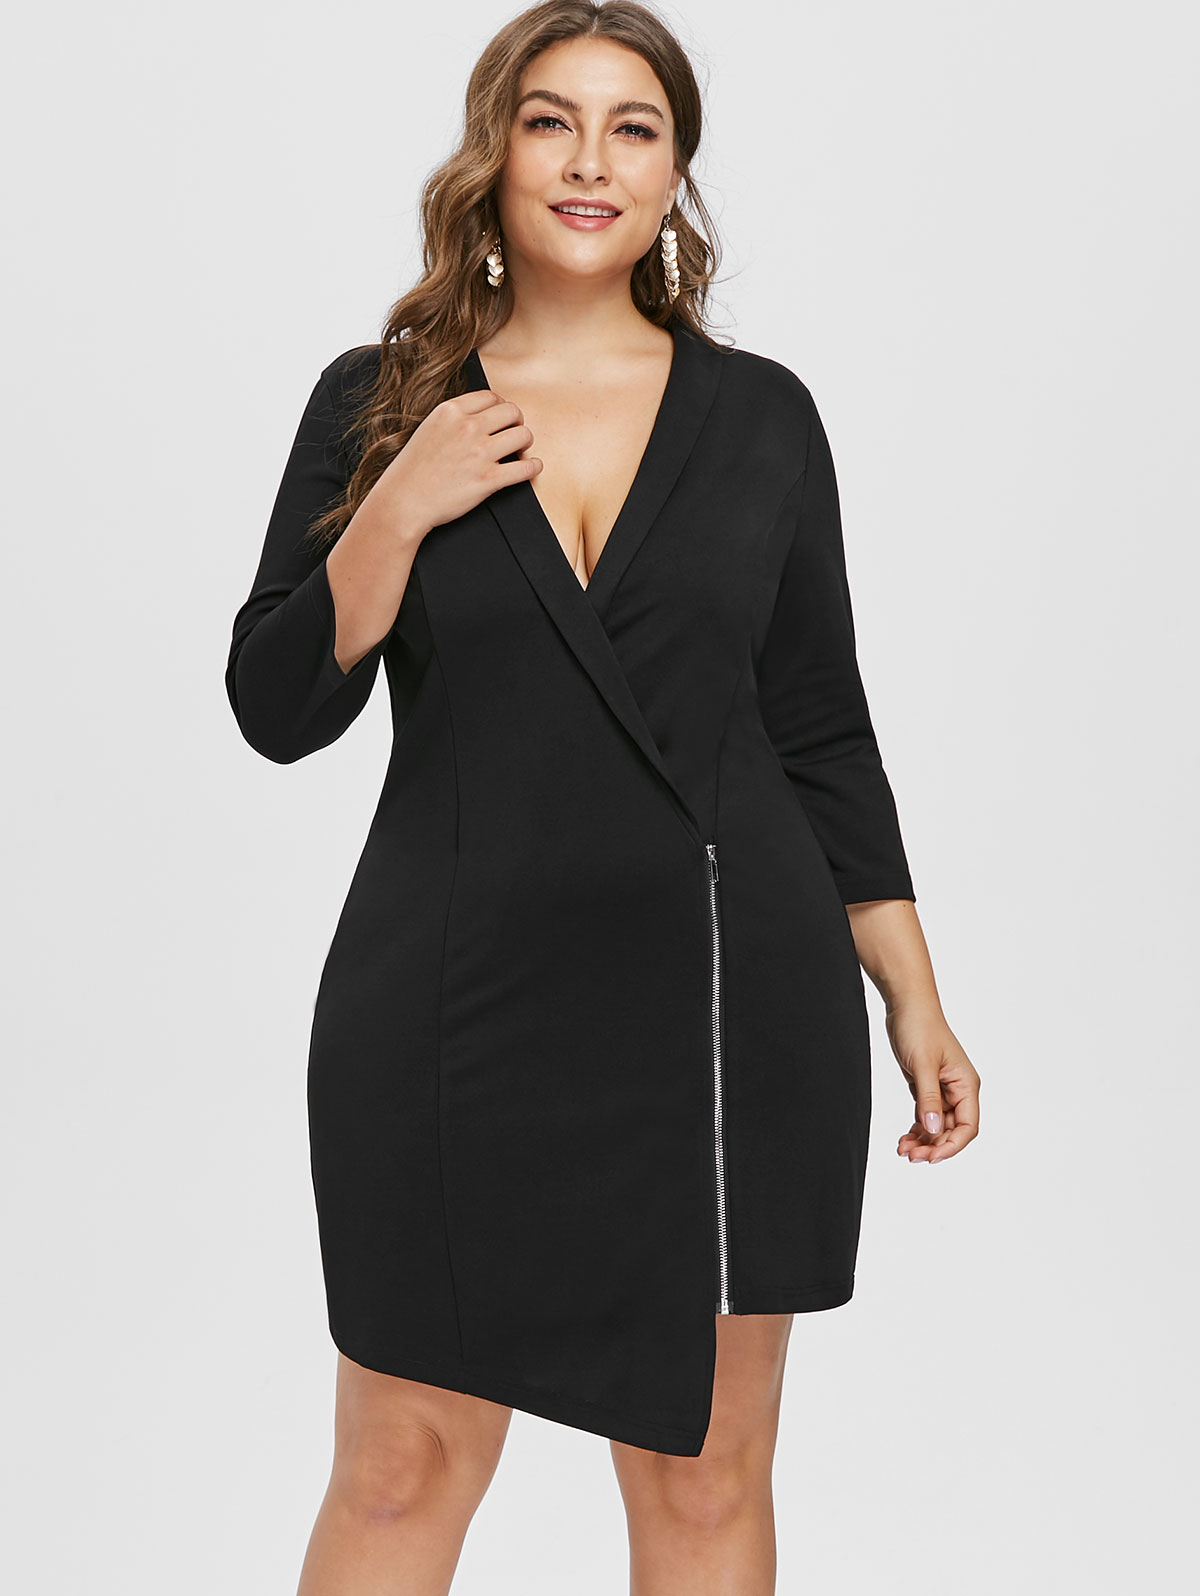 Wipalo Sexy Plus Size 5XL Zip Up Plunging Neck Dress Three Quarter Sleeve  Asymmetrical Surplice Dress Women Autumn Party Dress-in Dresses from  Women s ... 5c52ed03f